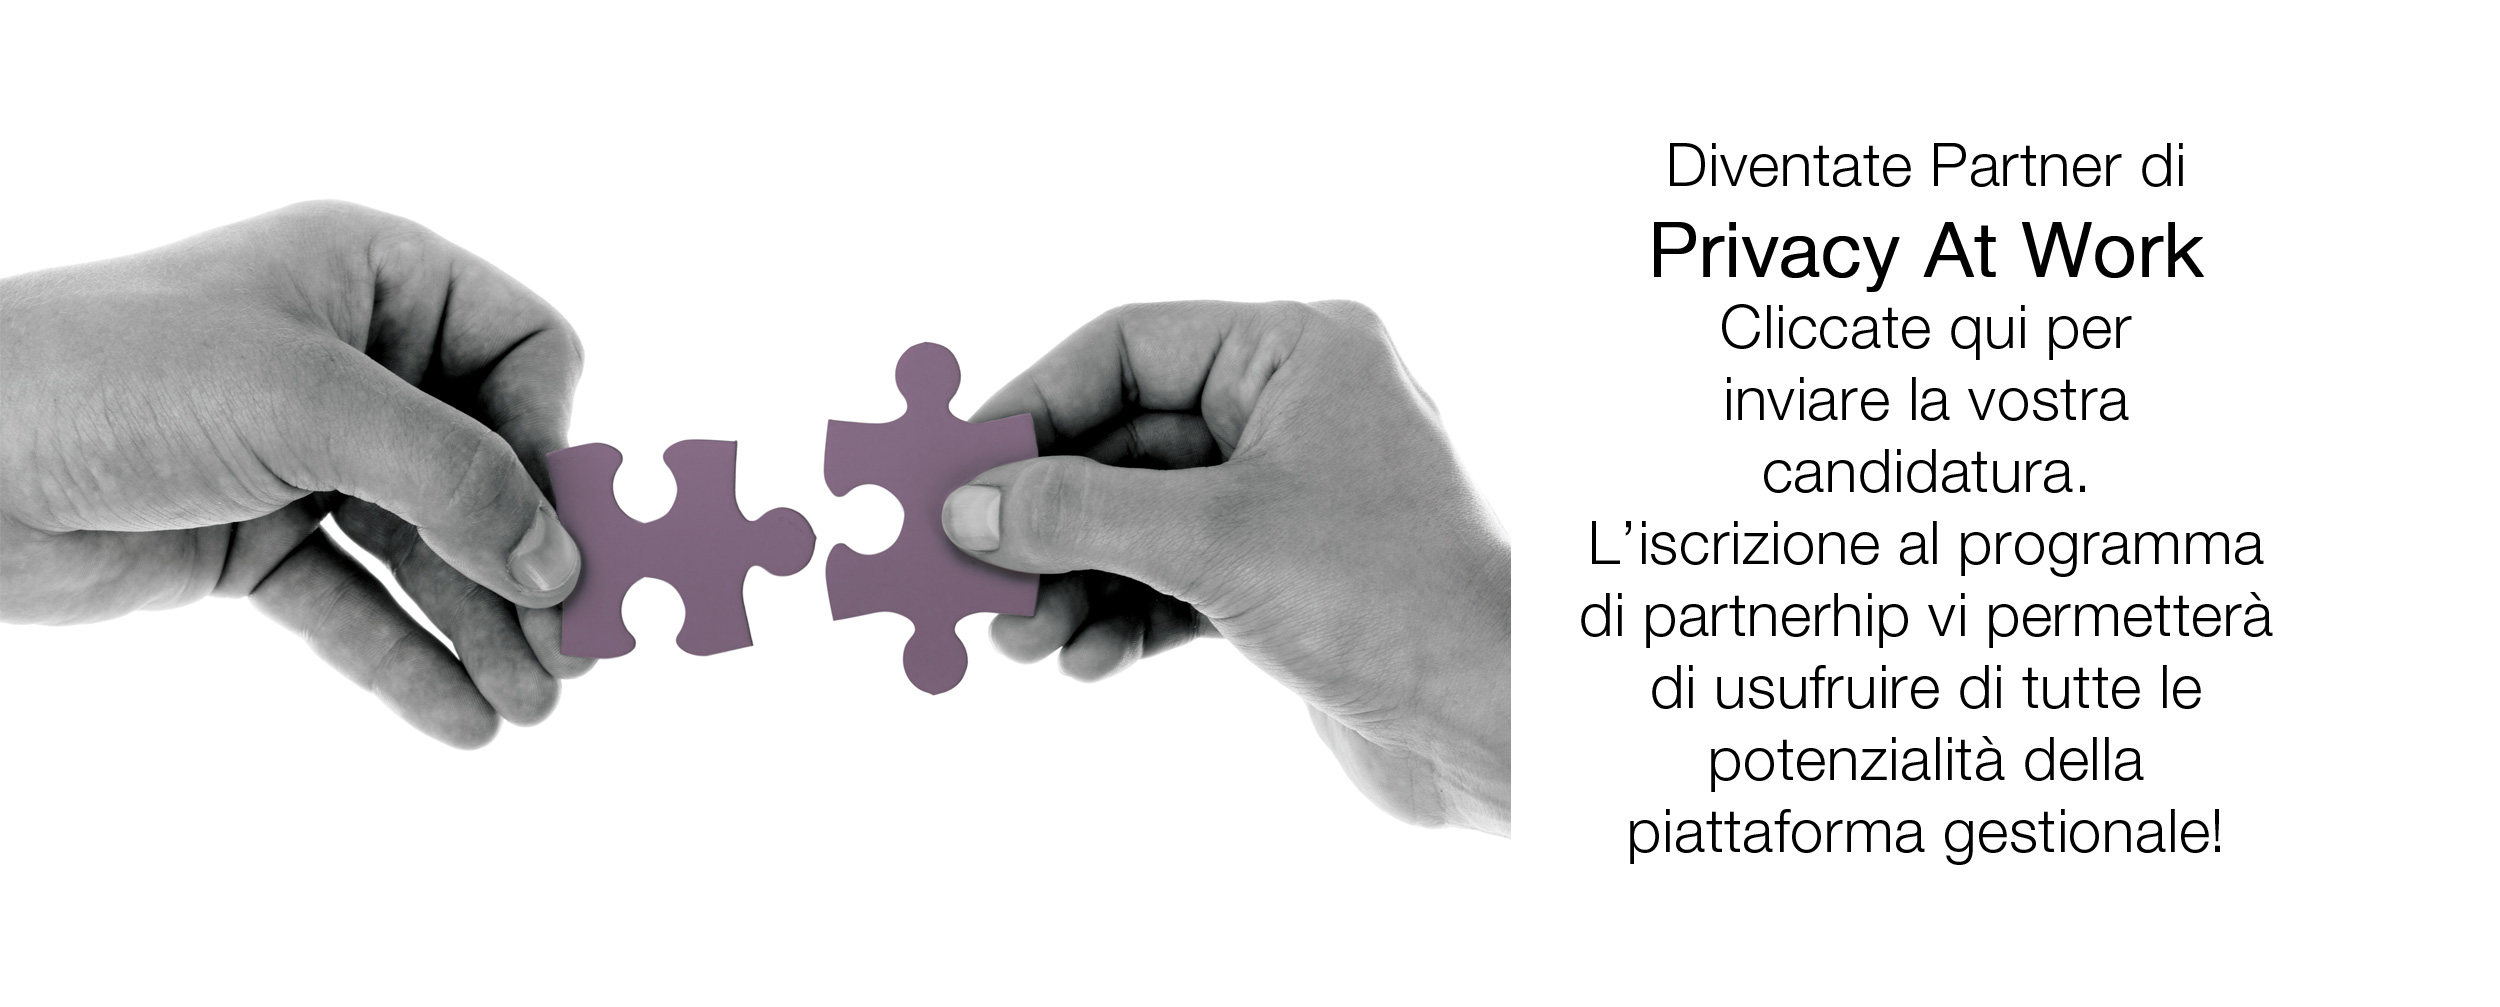 Iscrivetevi a programma di partnership di Privacy at Work